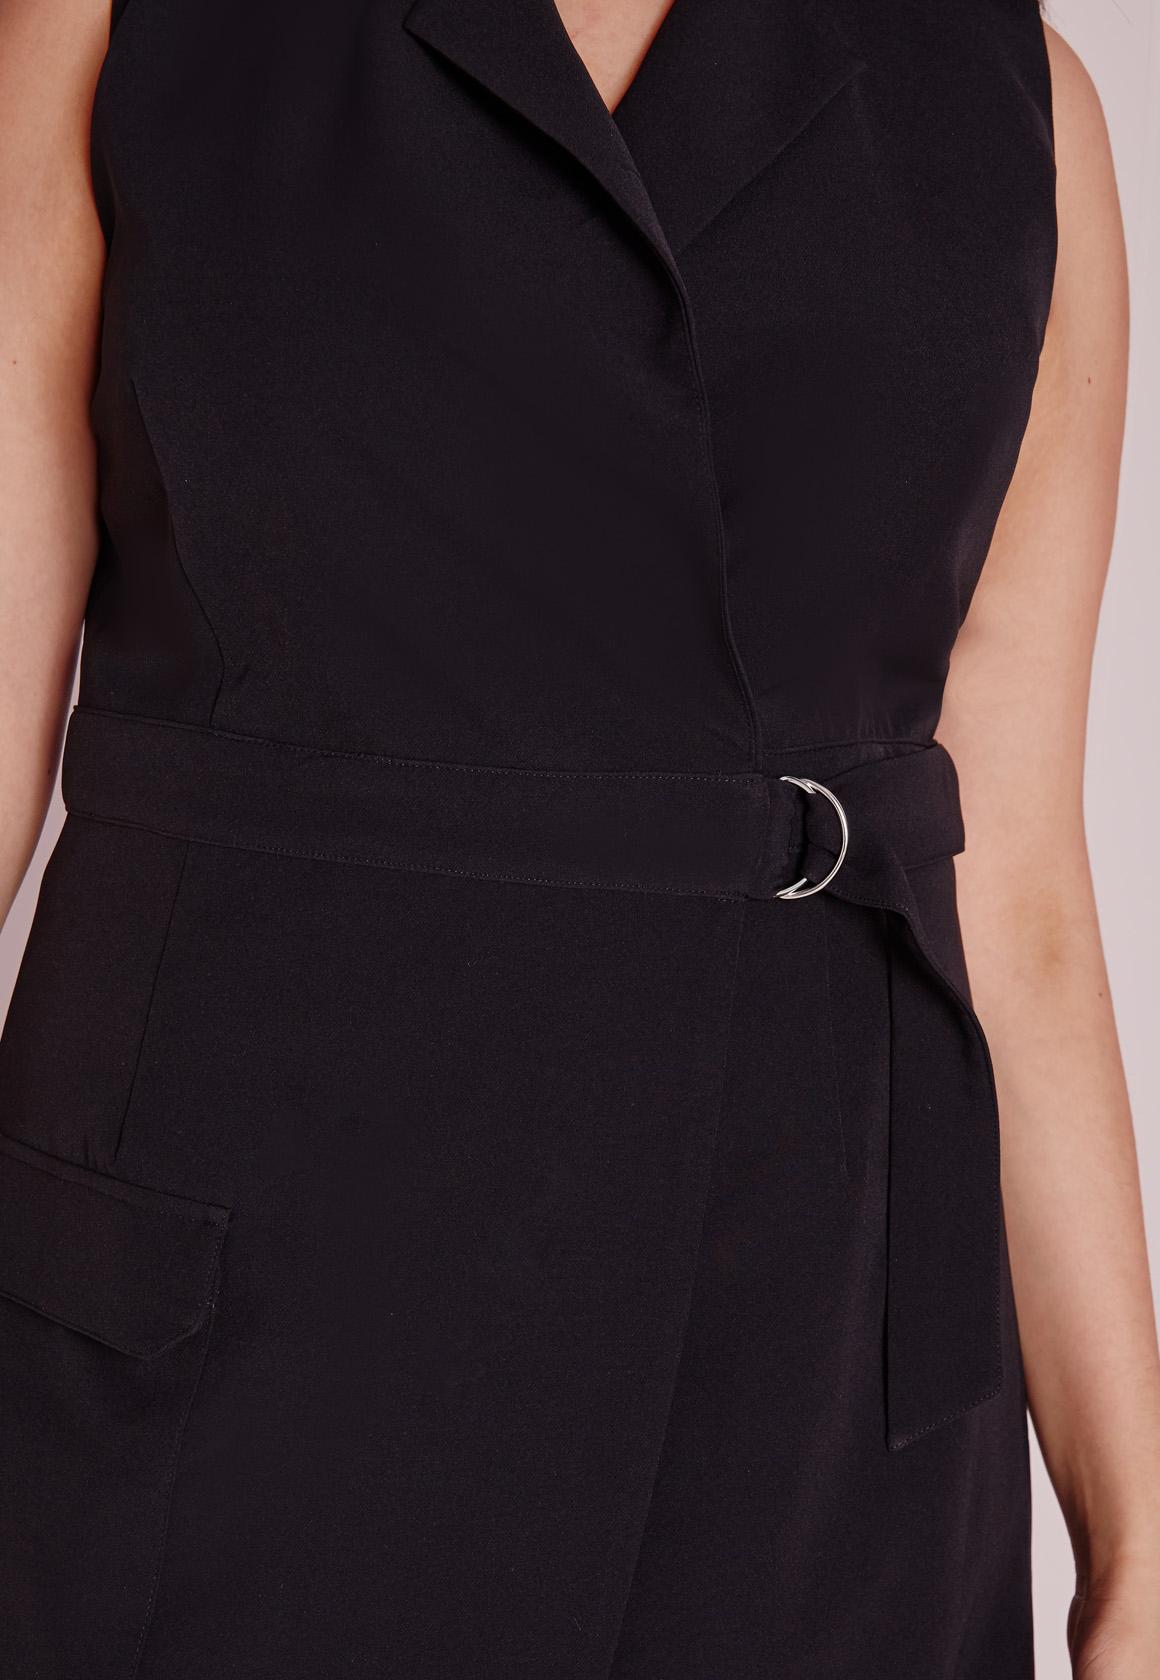 Black cocktail dress size 0 rings